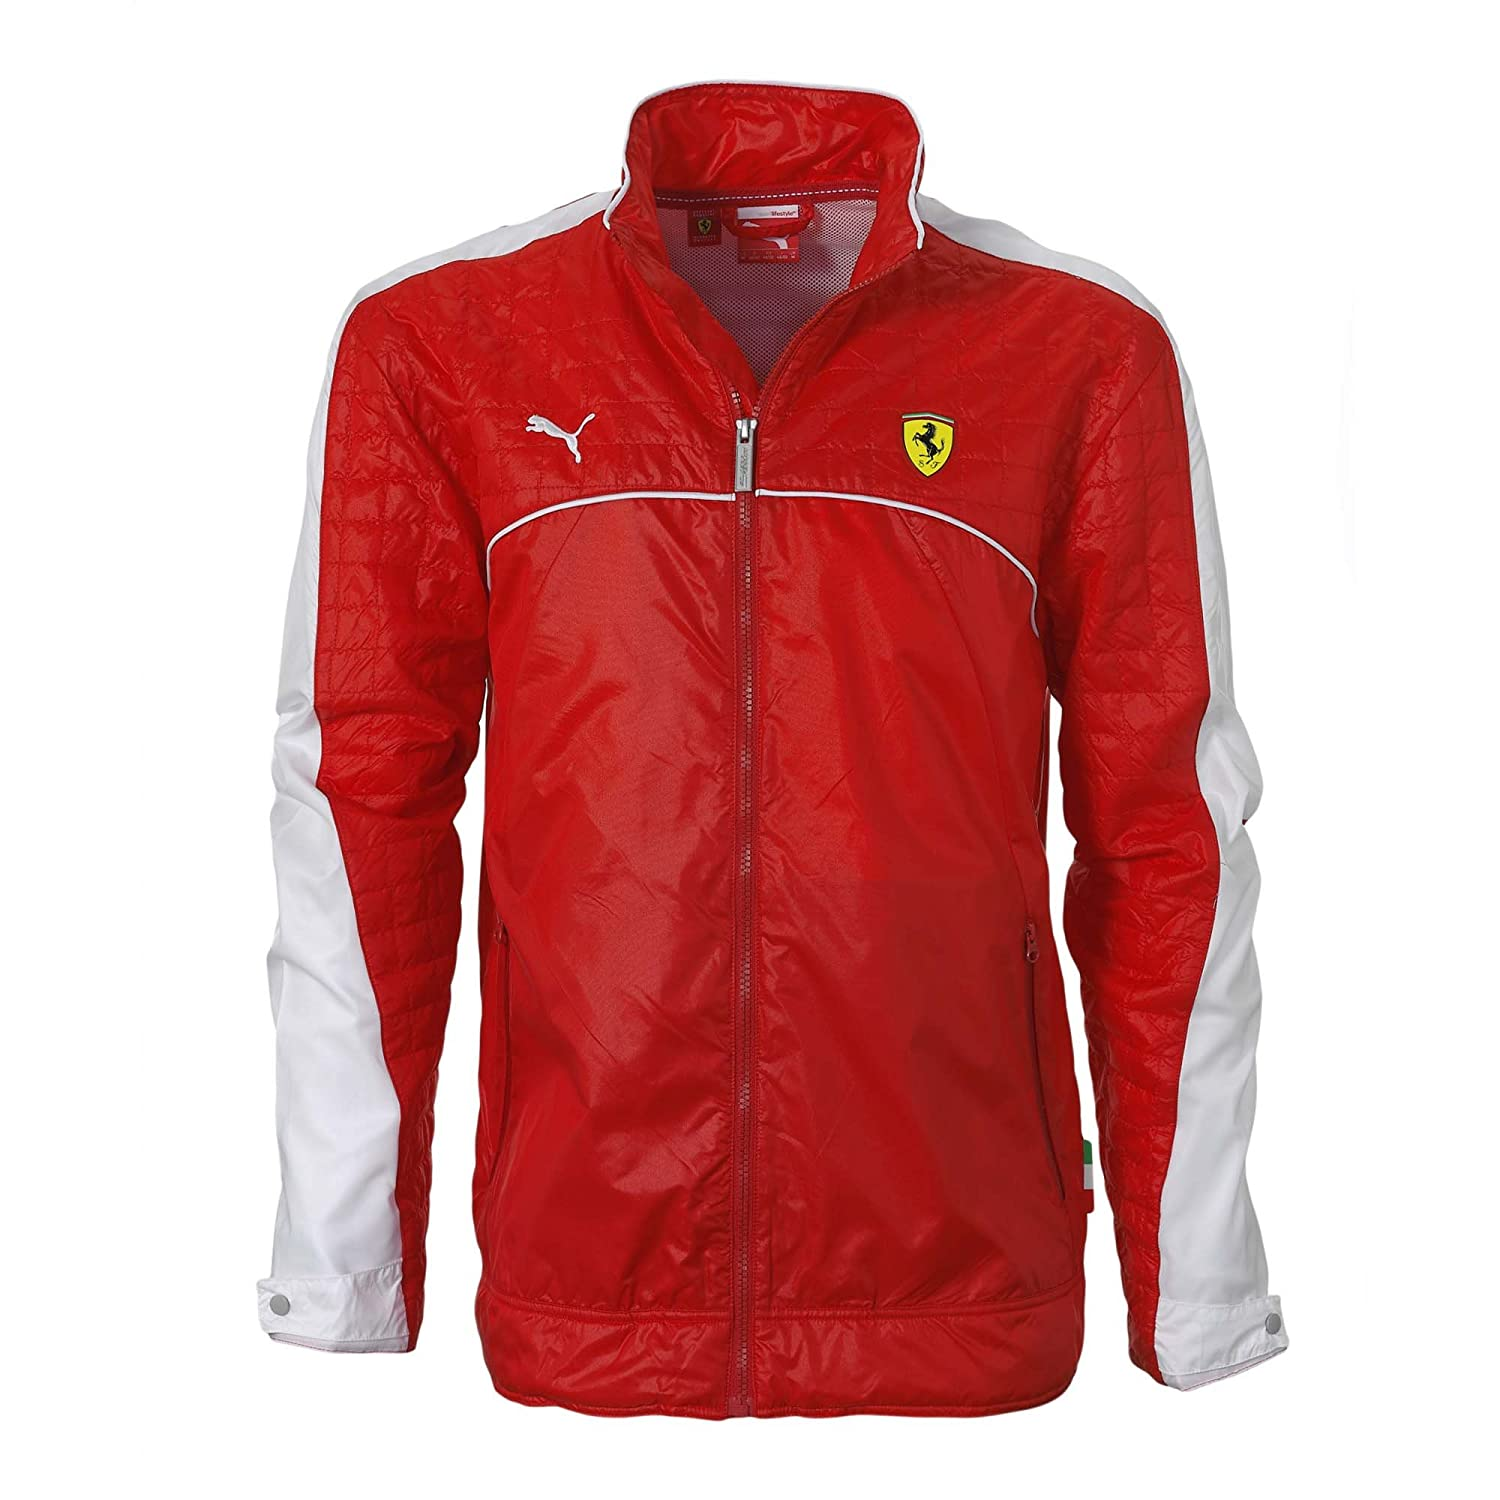 to because be clothes kids aunt pin suit baby m going an i ferrari scuderia pilot